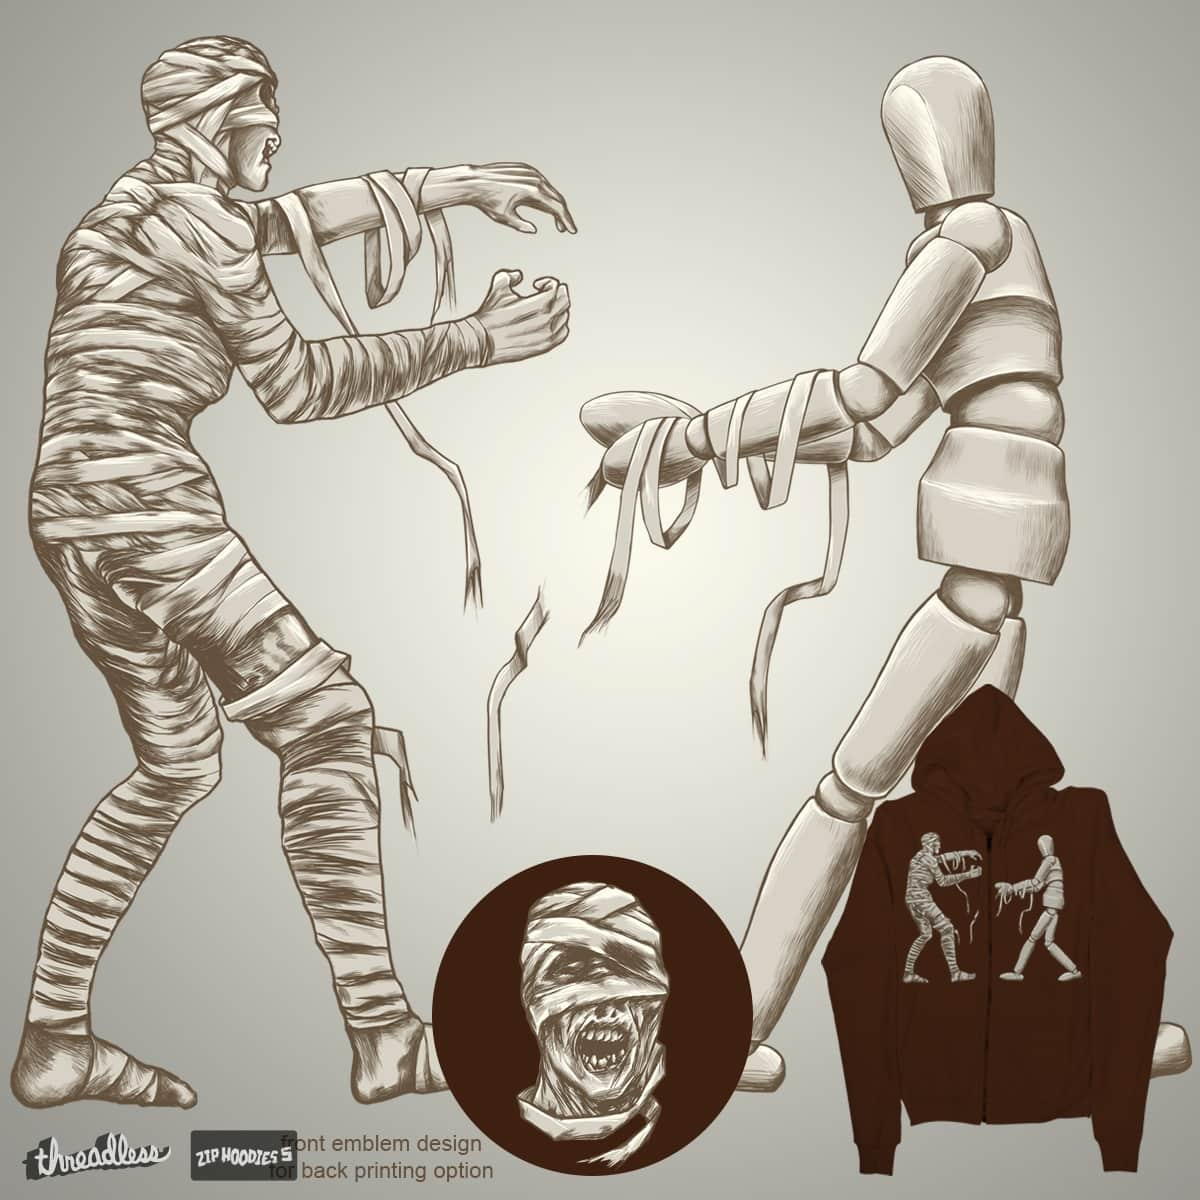 THE MUMMY & THE DUMMY by RGRLV on Threadless